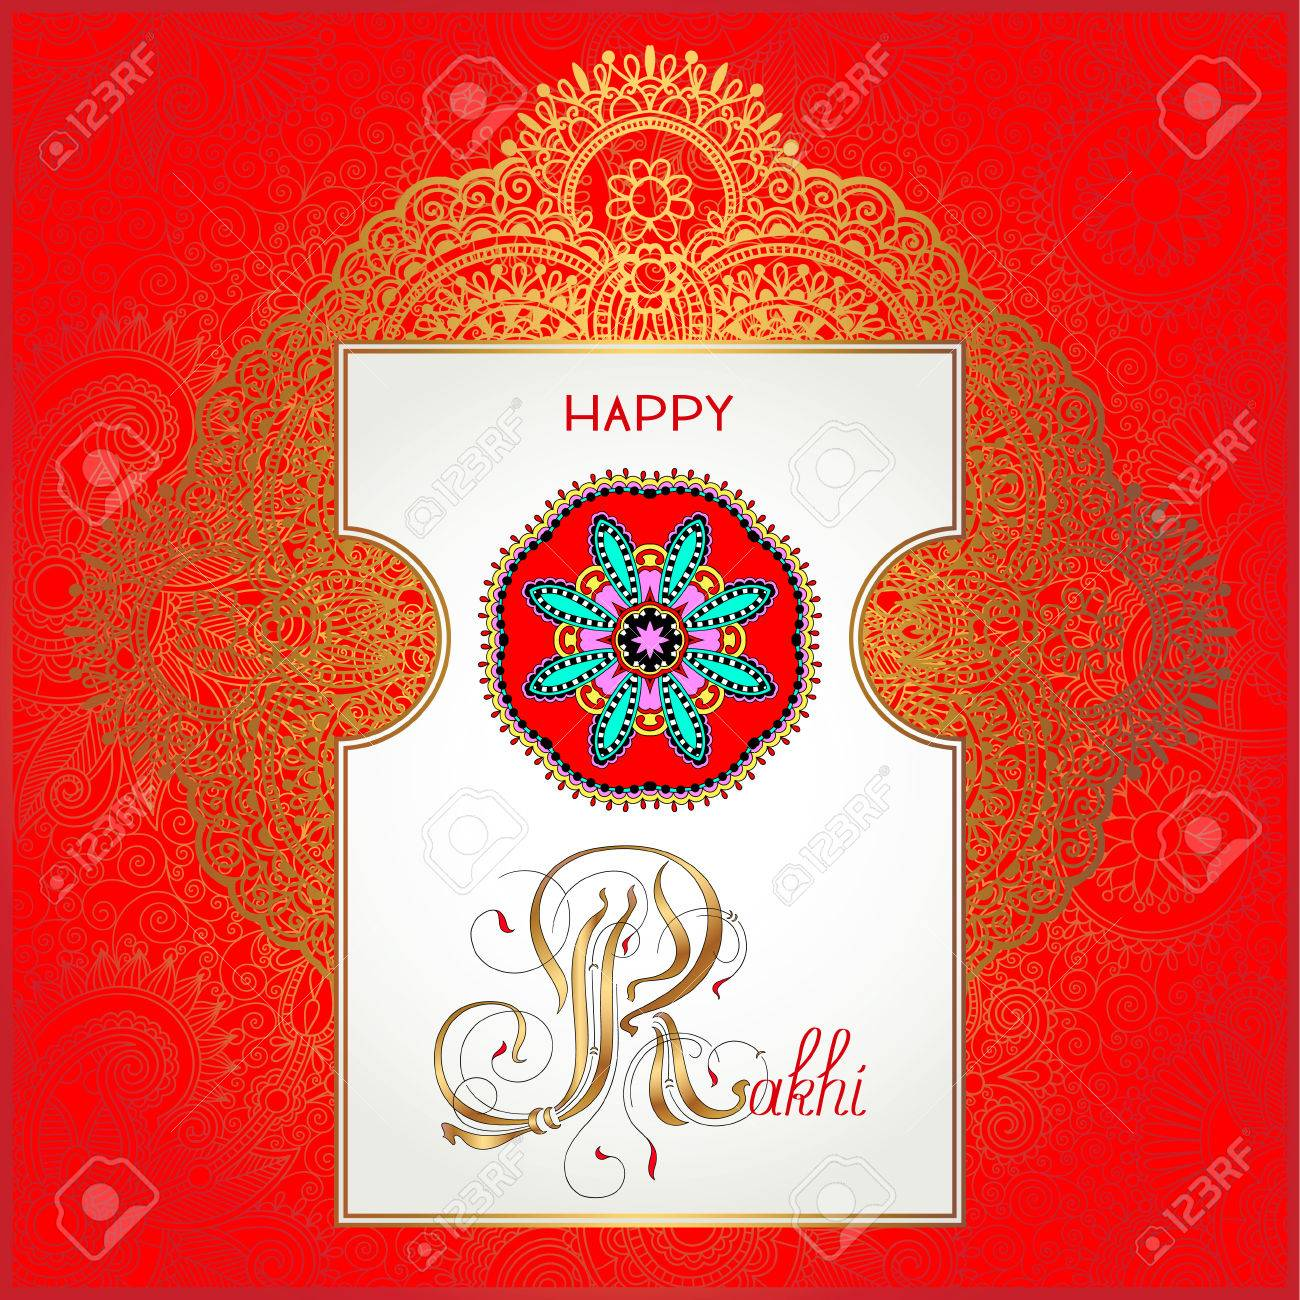 Red happy rakhi greeting card for indian holiday raksha bandhan red happy rakhi greeting card for indian holiday raksha bandhan with original ornamental bangle on floral m4hsunfo